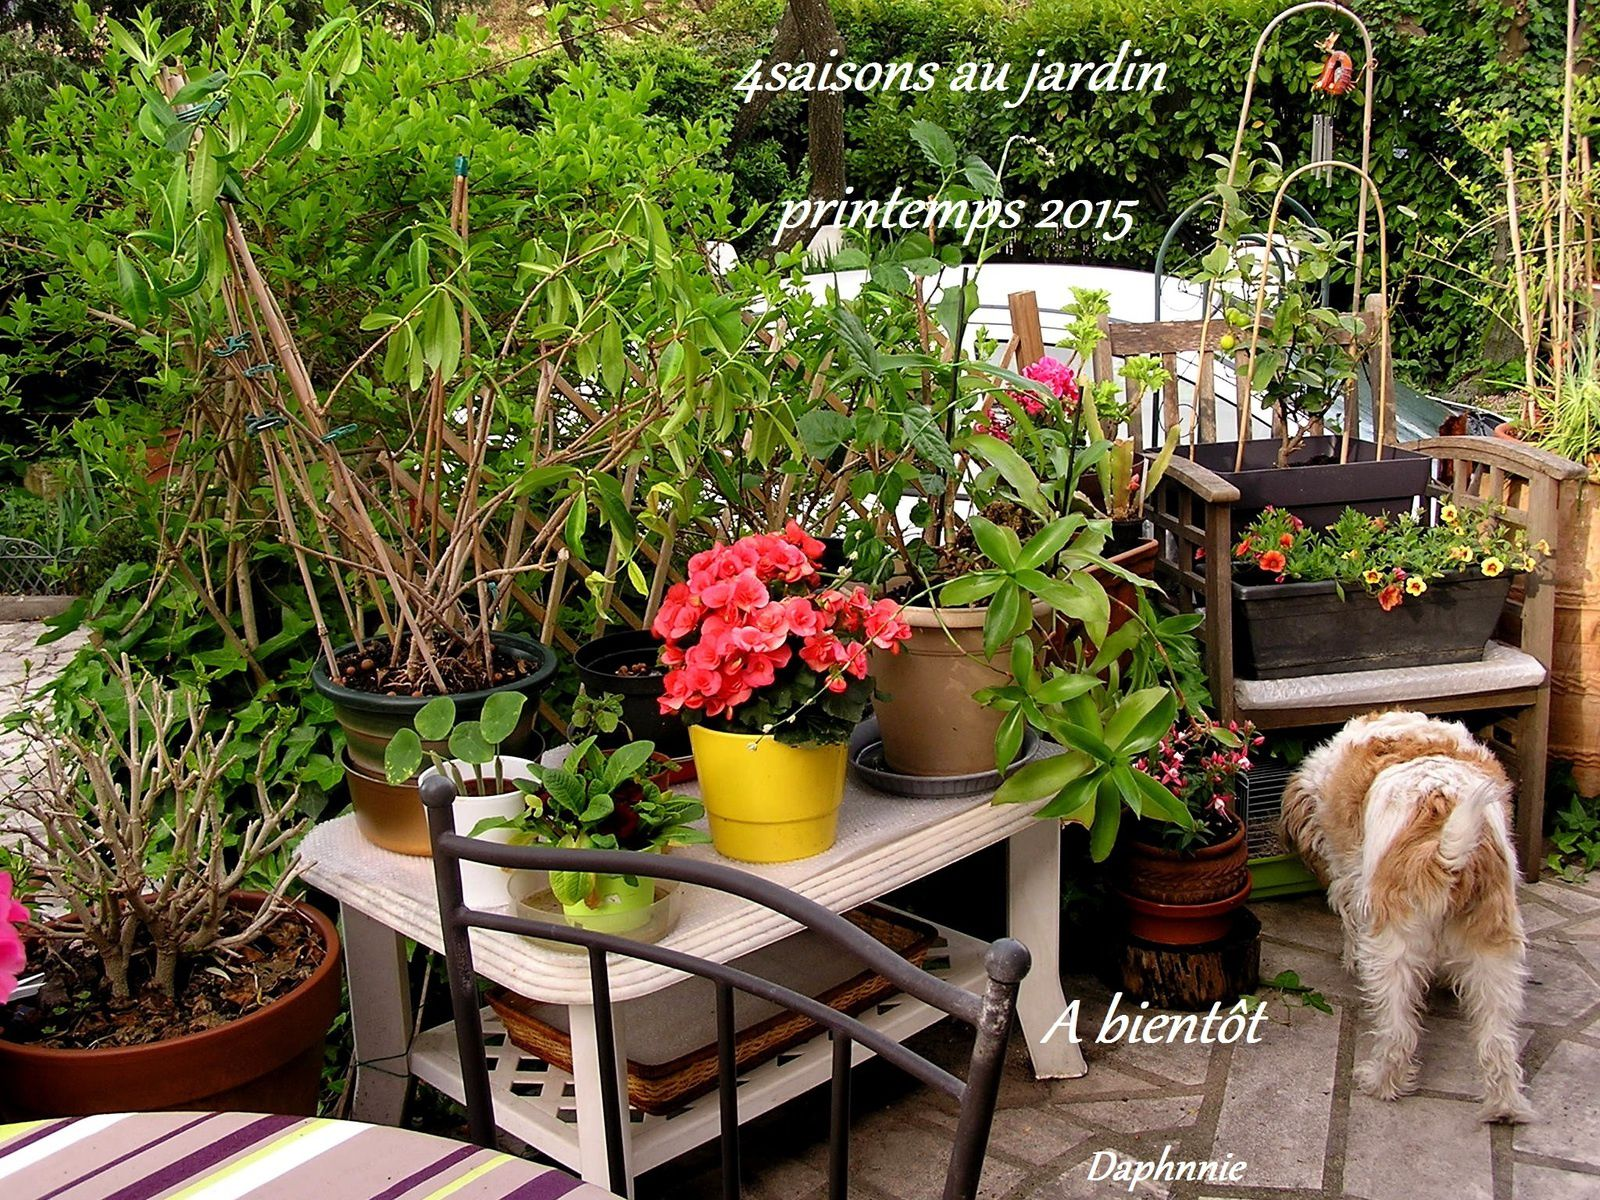 4 saions au jardin printemps 2015 orchidium vaunage